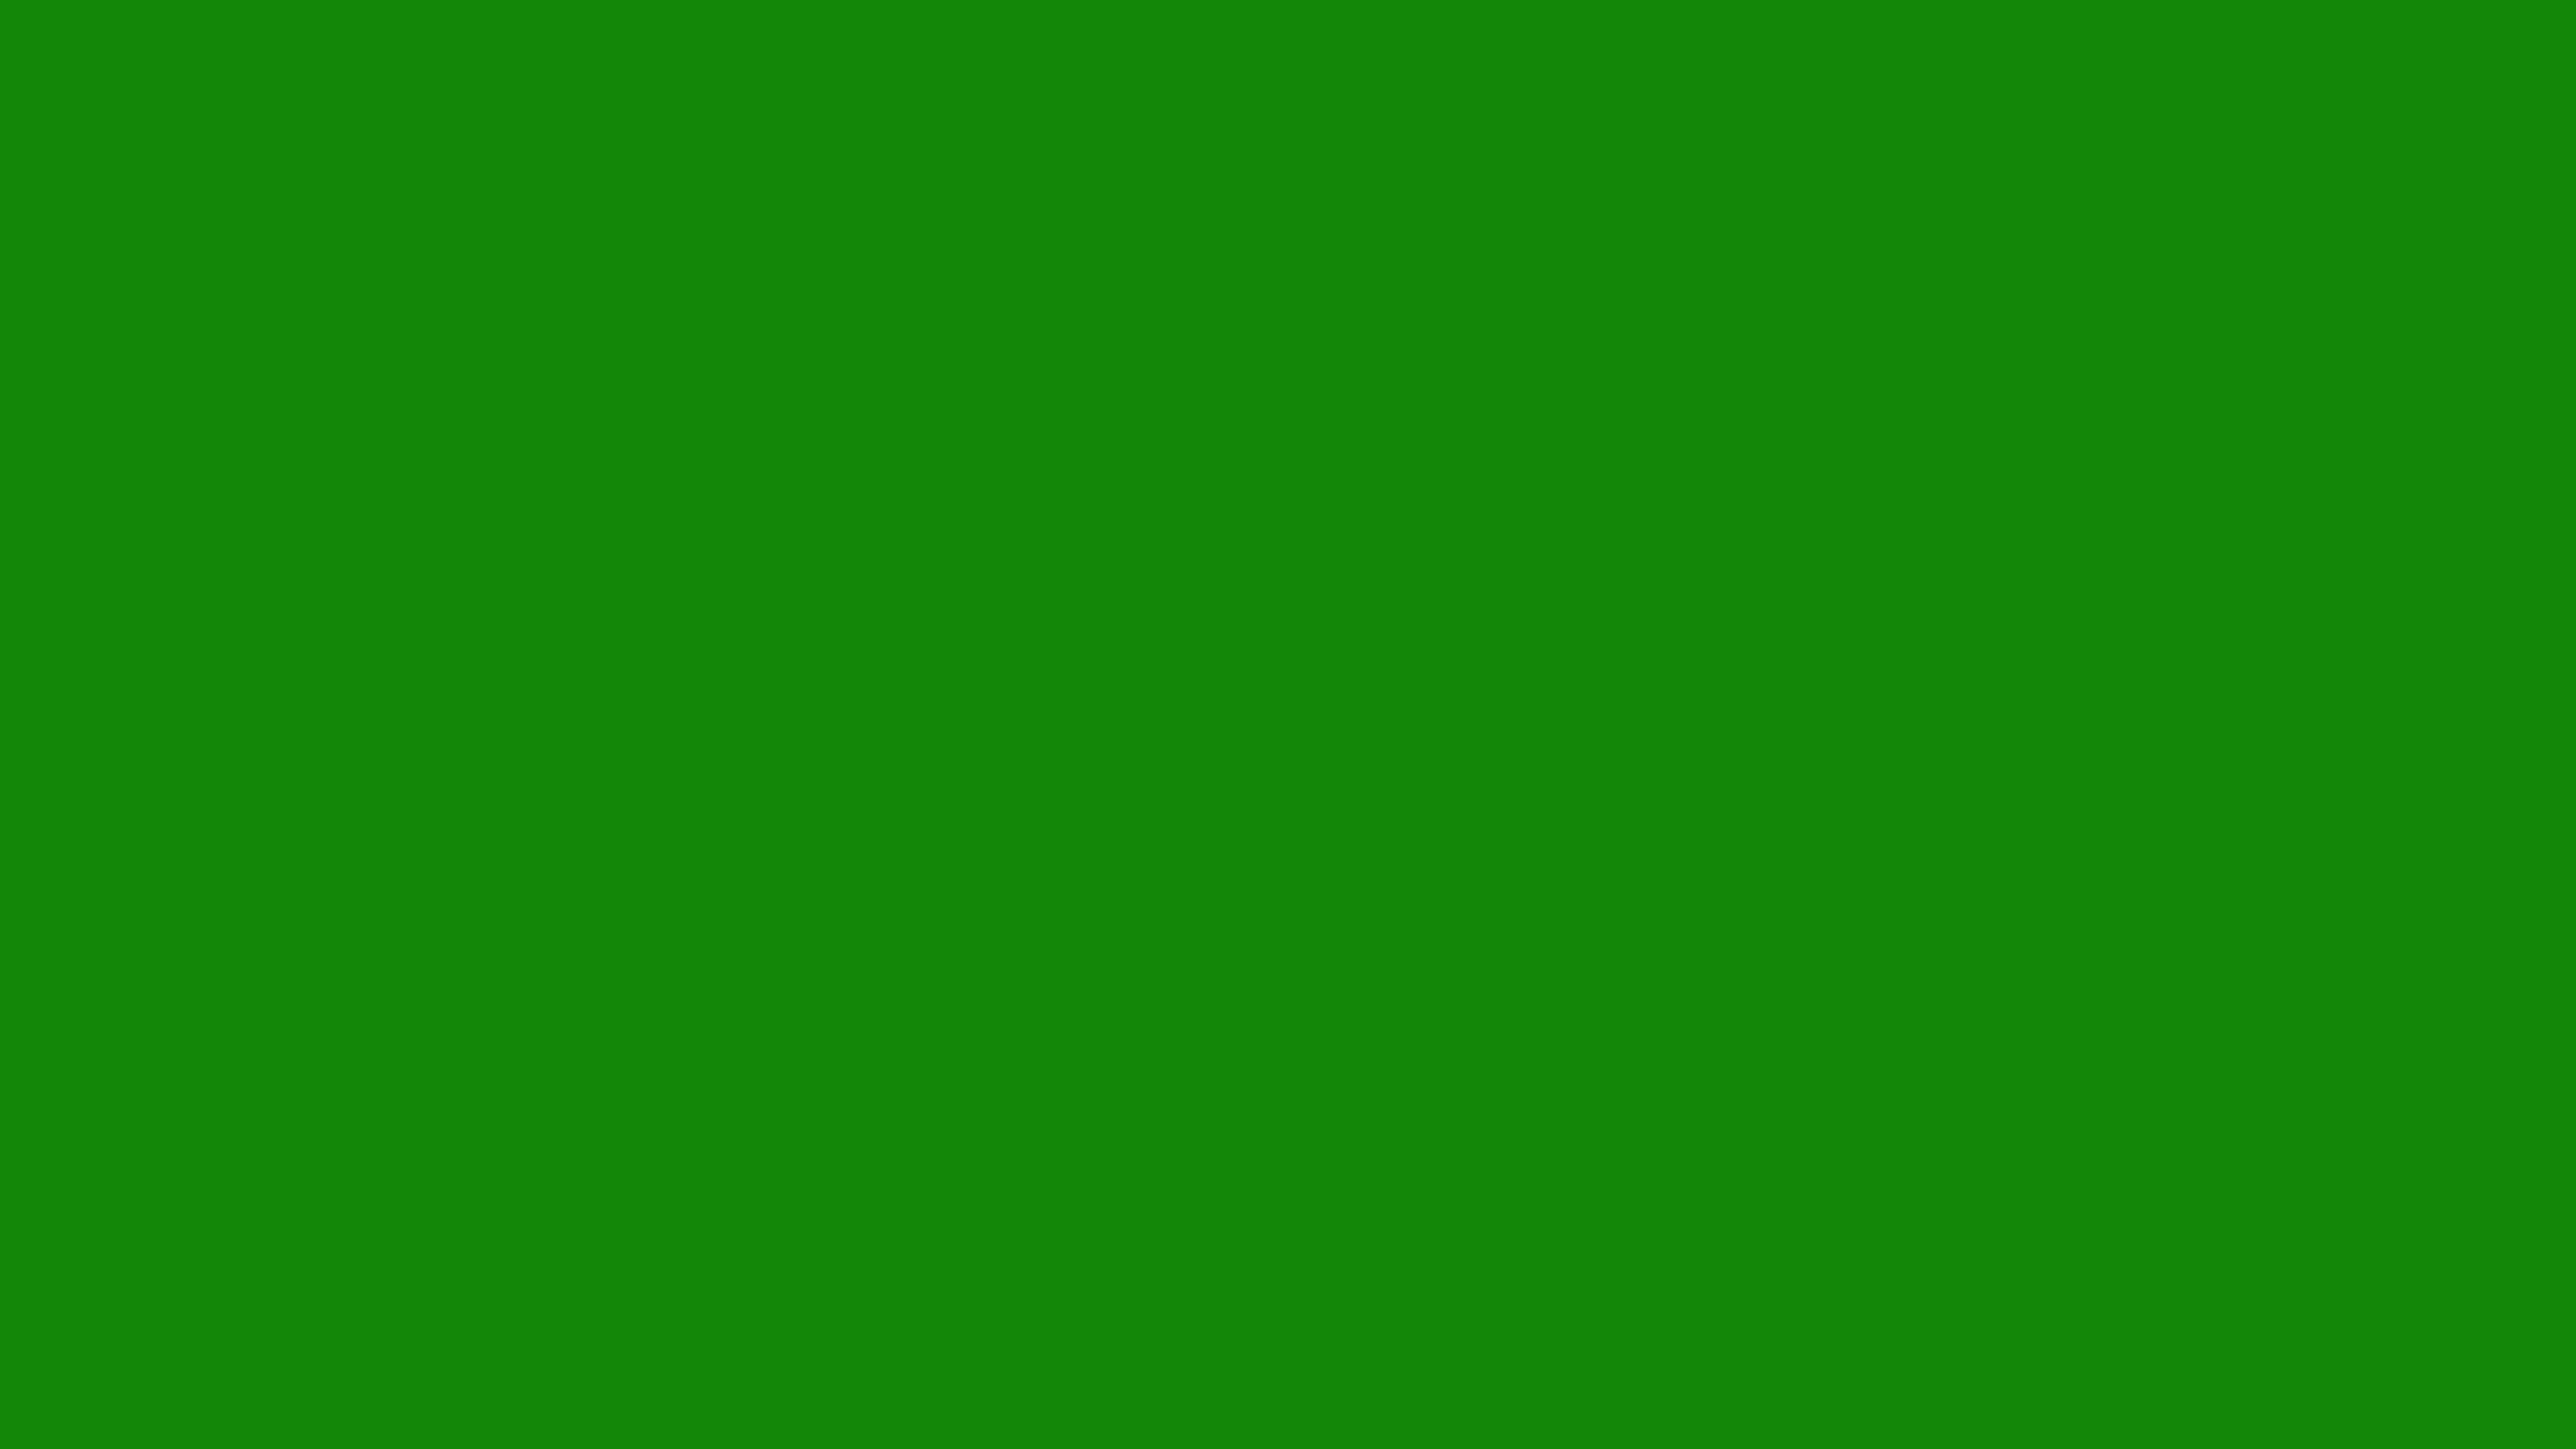 3840x2160 India Green Solid Color Background